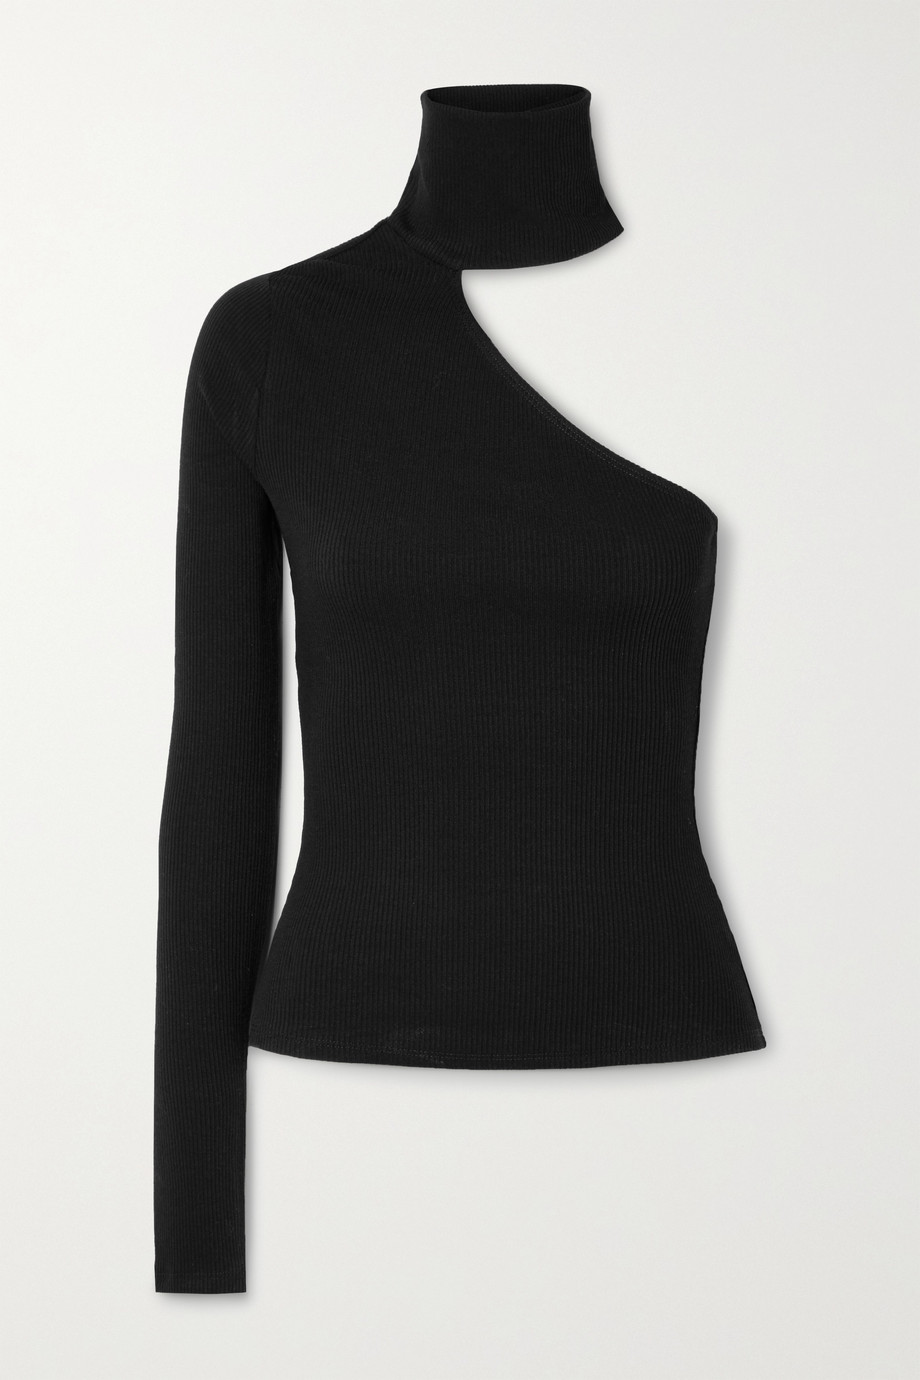 THE RANGE Mass cutout ribbed TENCEL Lyocell-blend turtleneck top